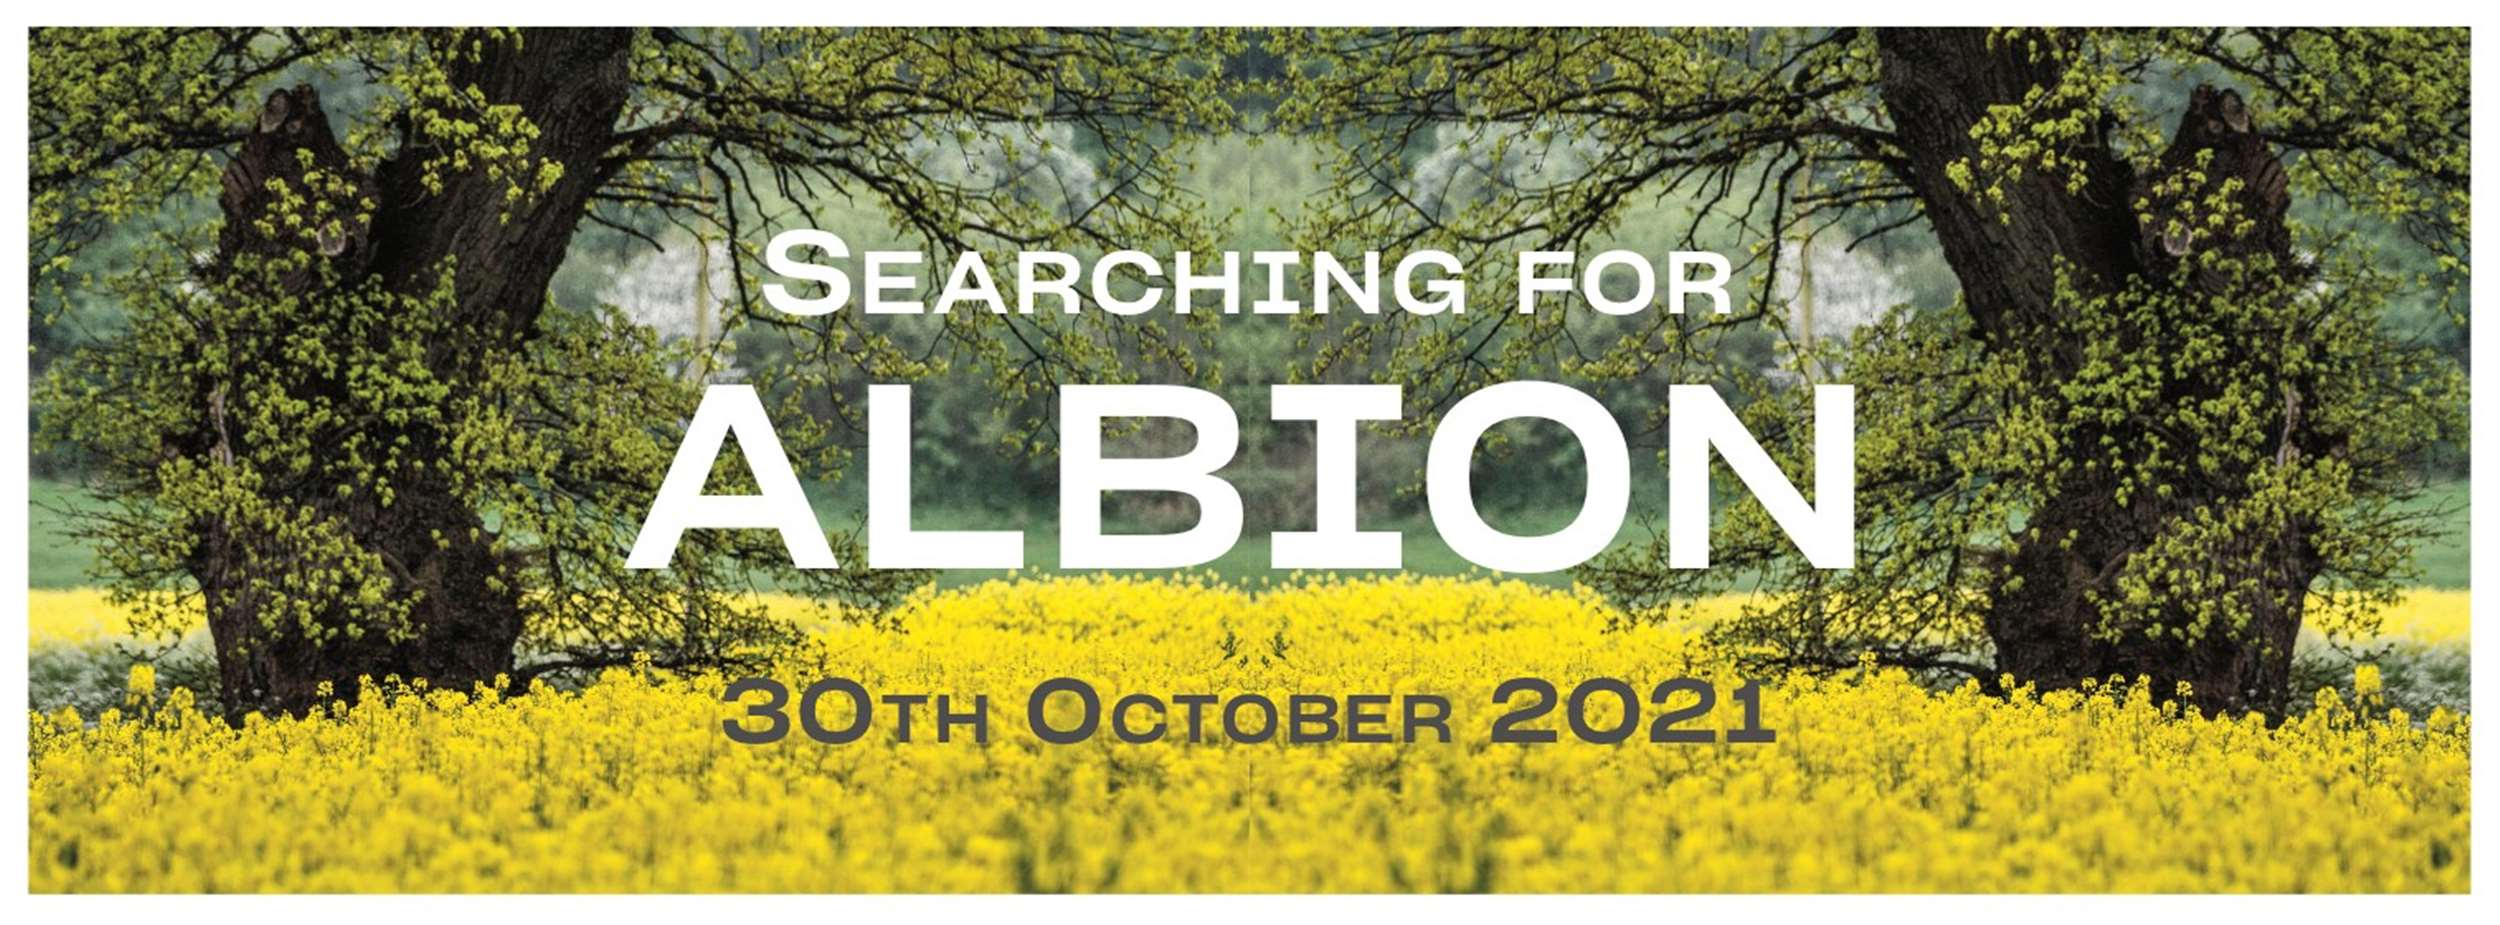 Searching for Albion